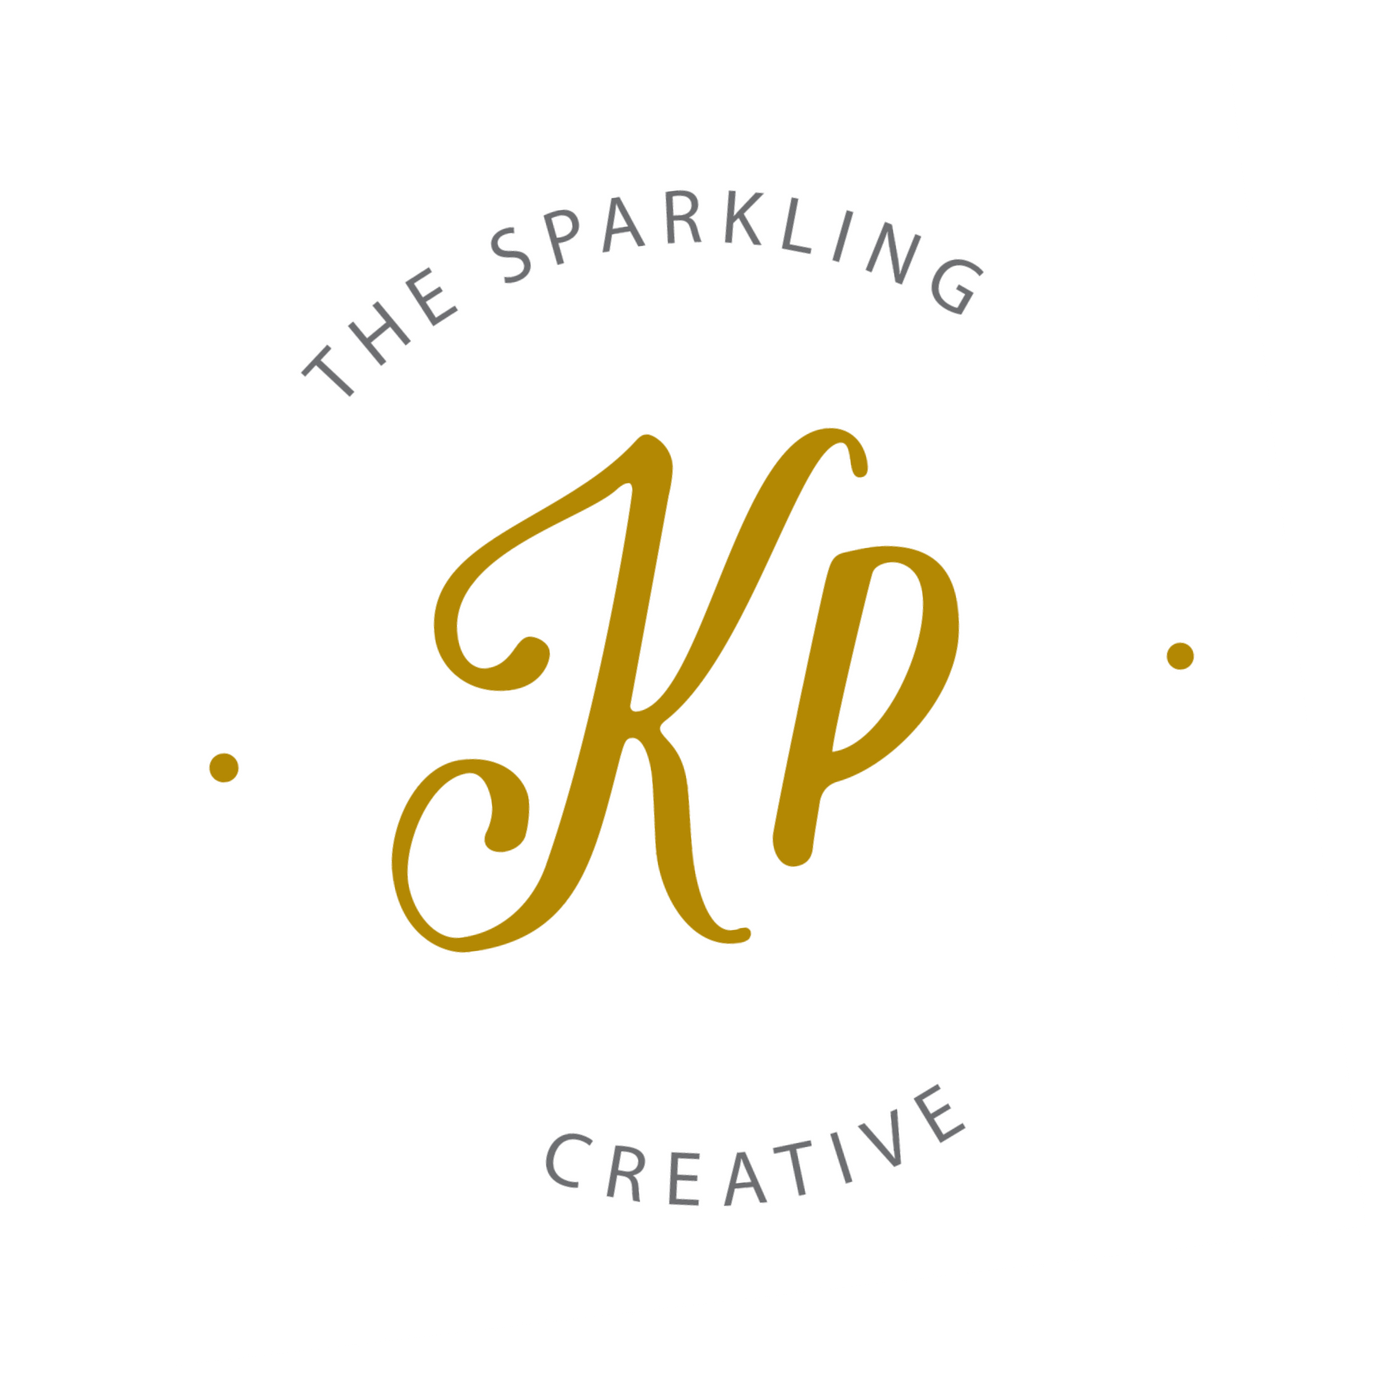 Liz Thompson on The Sparkling Creative Podcast